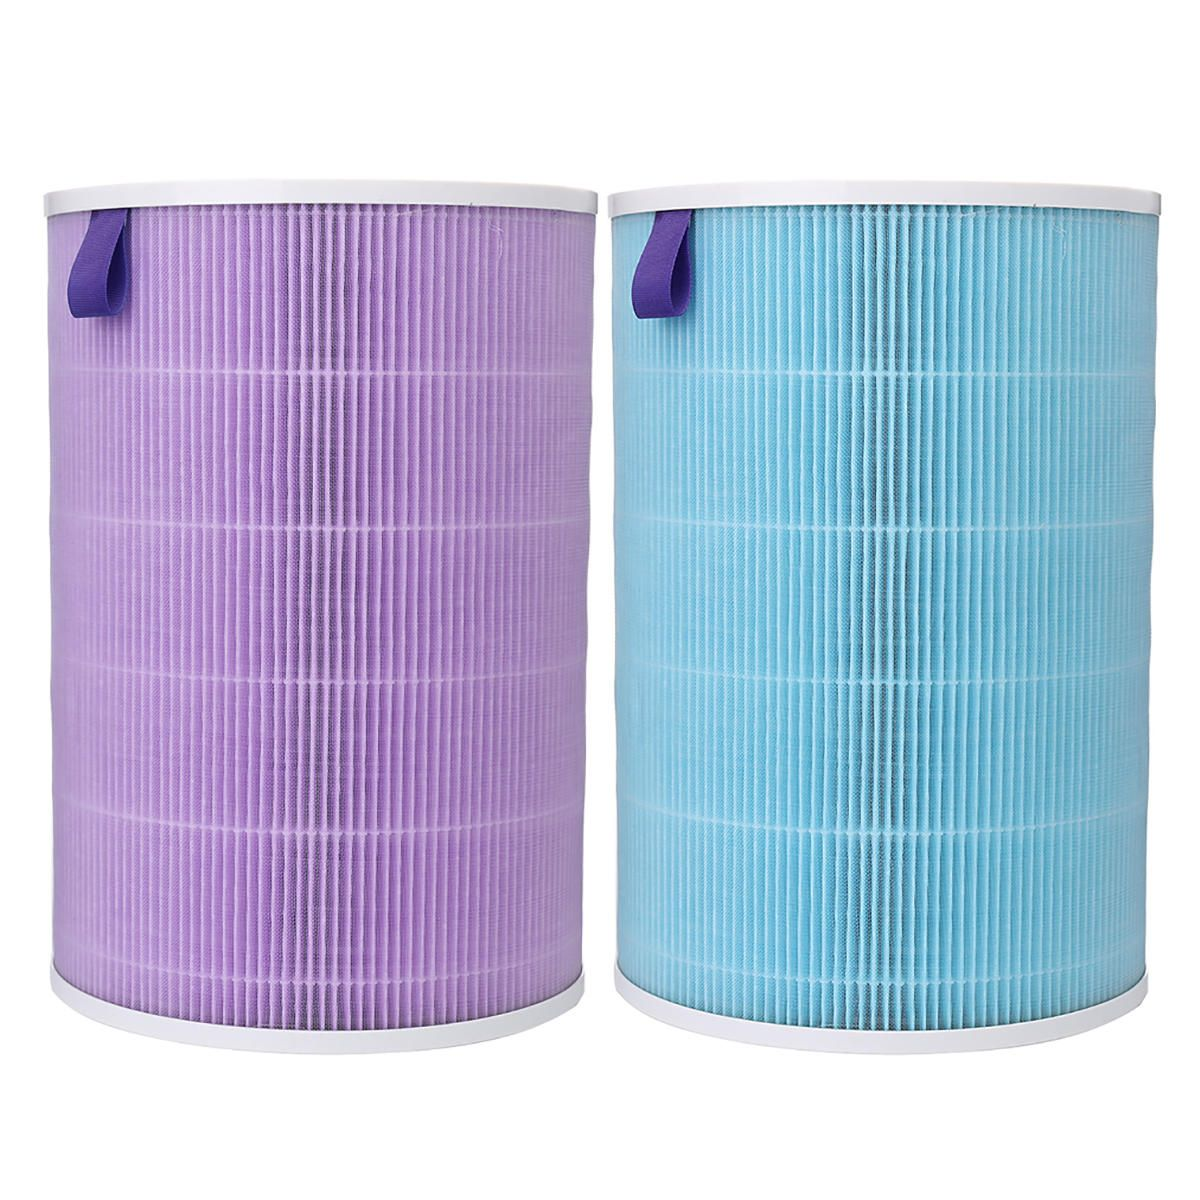 US34.99 34 Air Purifier Filter High Efficiency